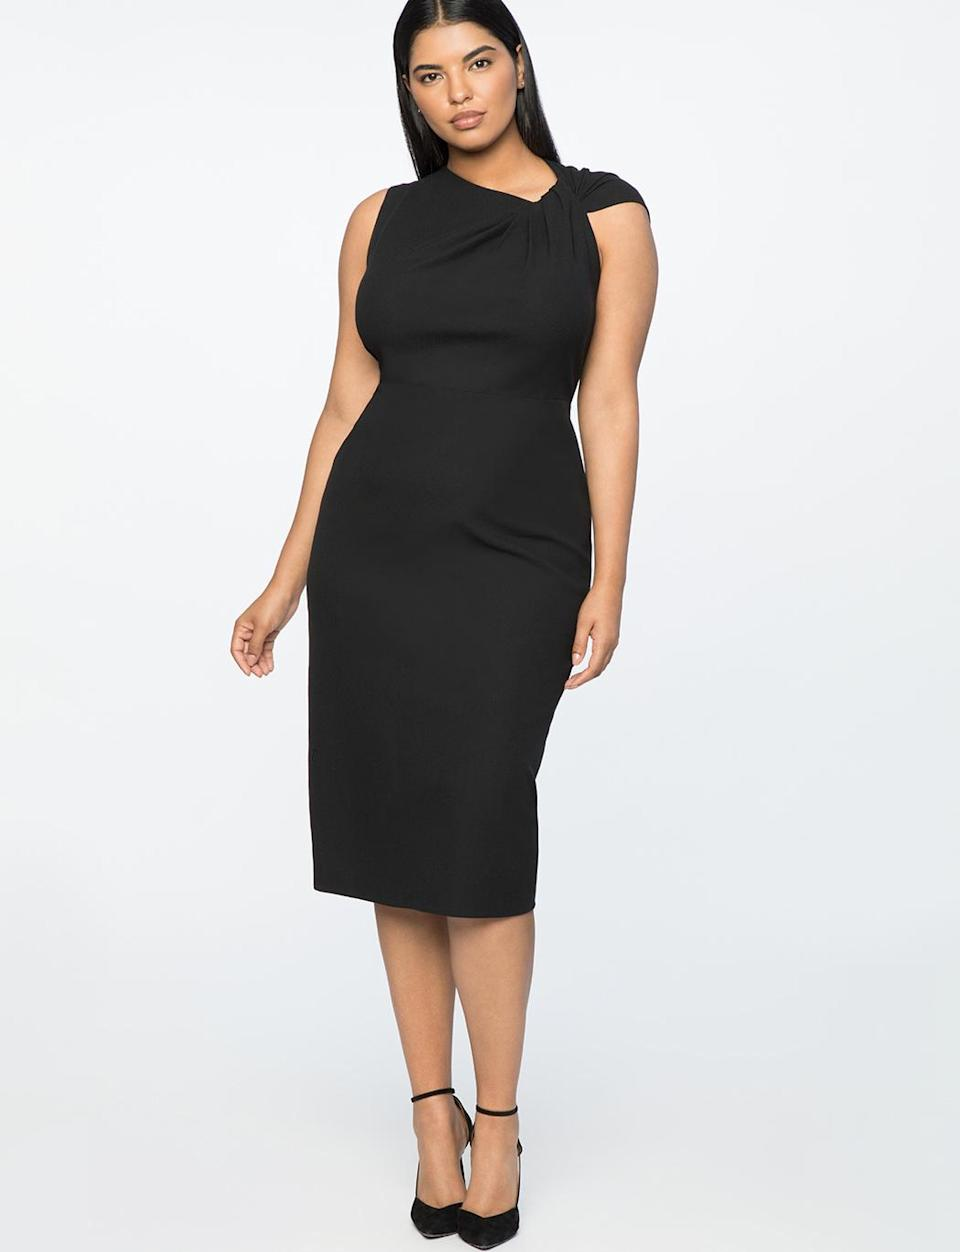 """<p>Similar to designs Wu has made for Meghan Markle in the past, this dress is classy with a chic subtle detail in a twisted shoulder. Add some jewels and sparkly heels for an instant holiday look. <br>Twist-shoulder sheath dress, $110, <a rel=""""nofollow noopener"""" href=""""https://fave.co/2zih6kv"""" target=""""_blank"""" data-ylk=""""slk:eloquii.com"""" class=""""link rapid-noclick-resp"""">eloquii.com</a> </p>"""